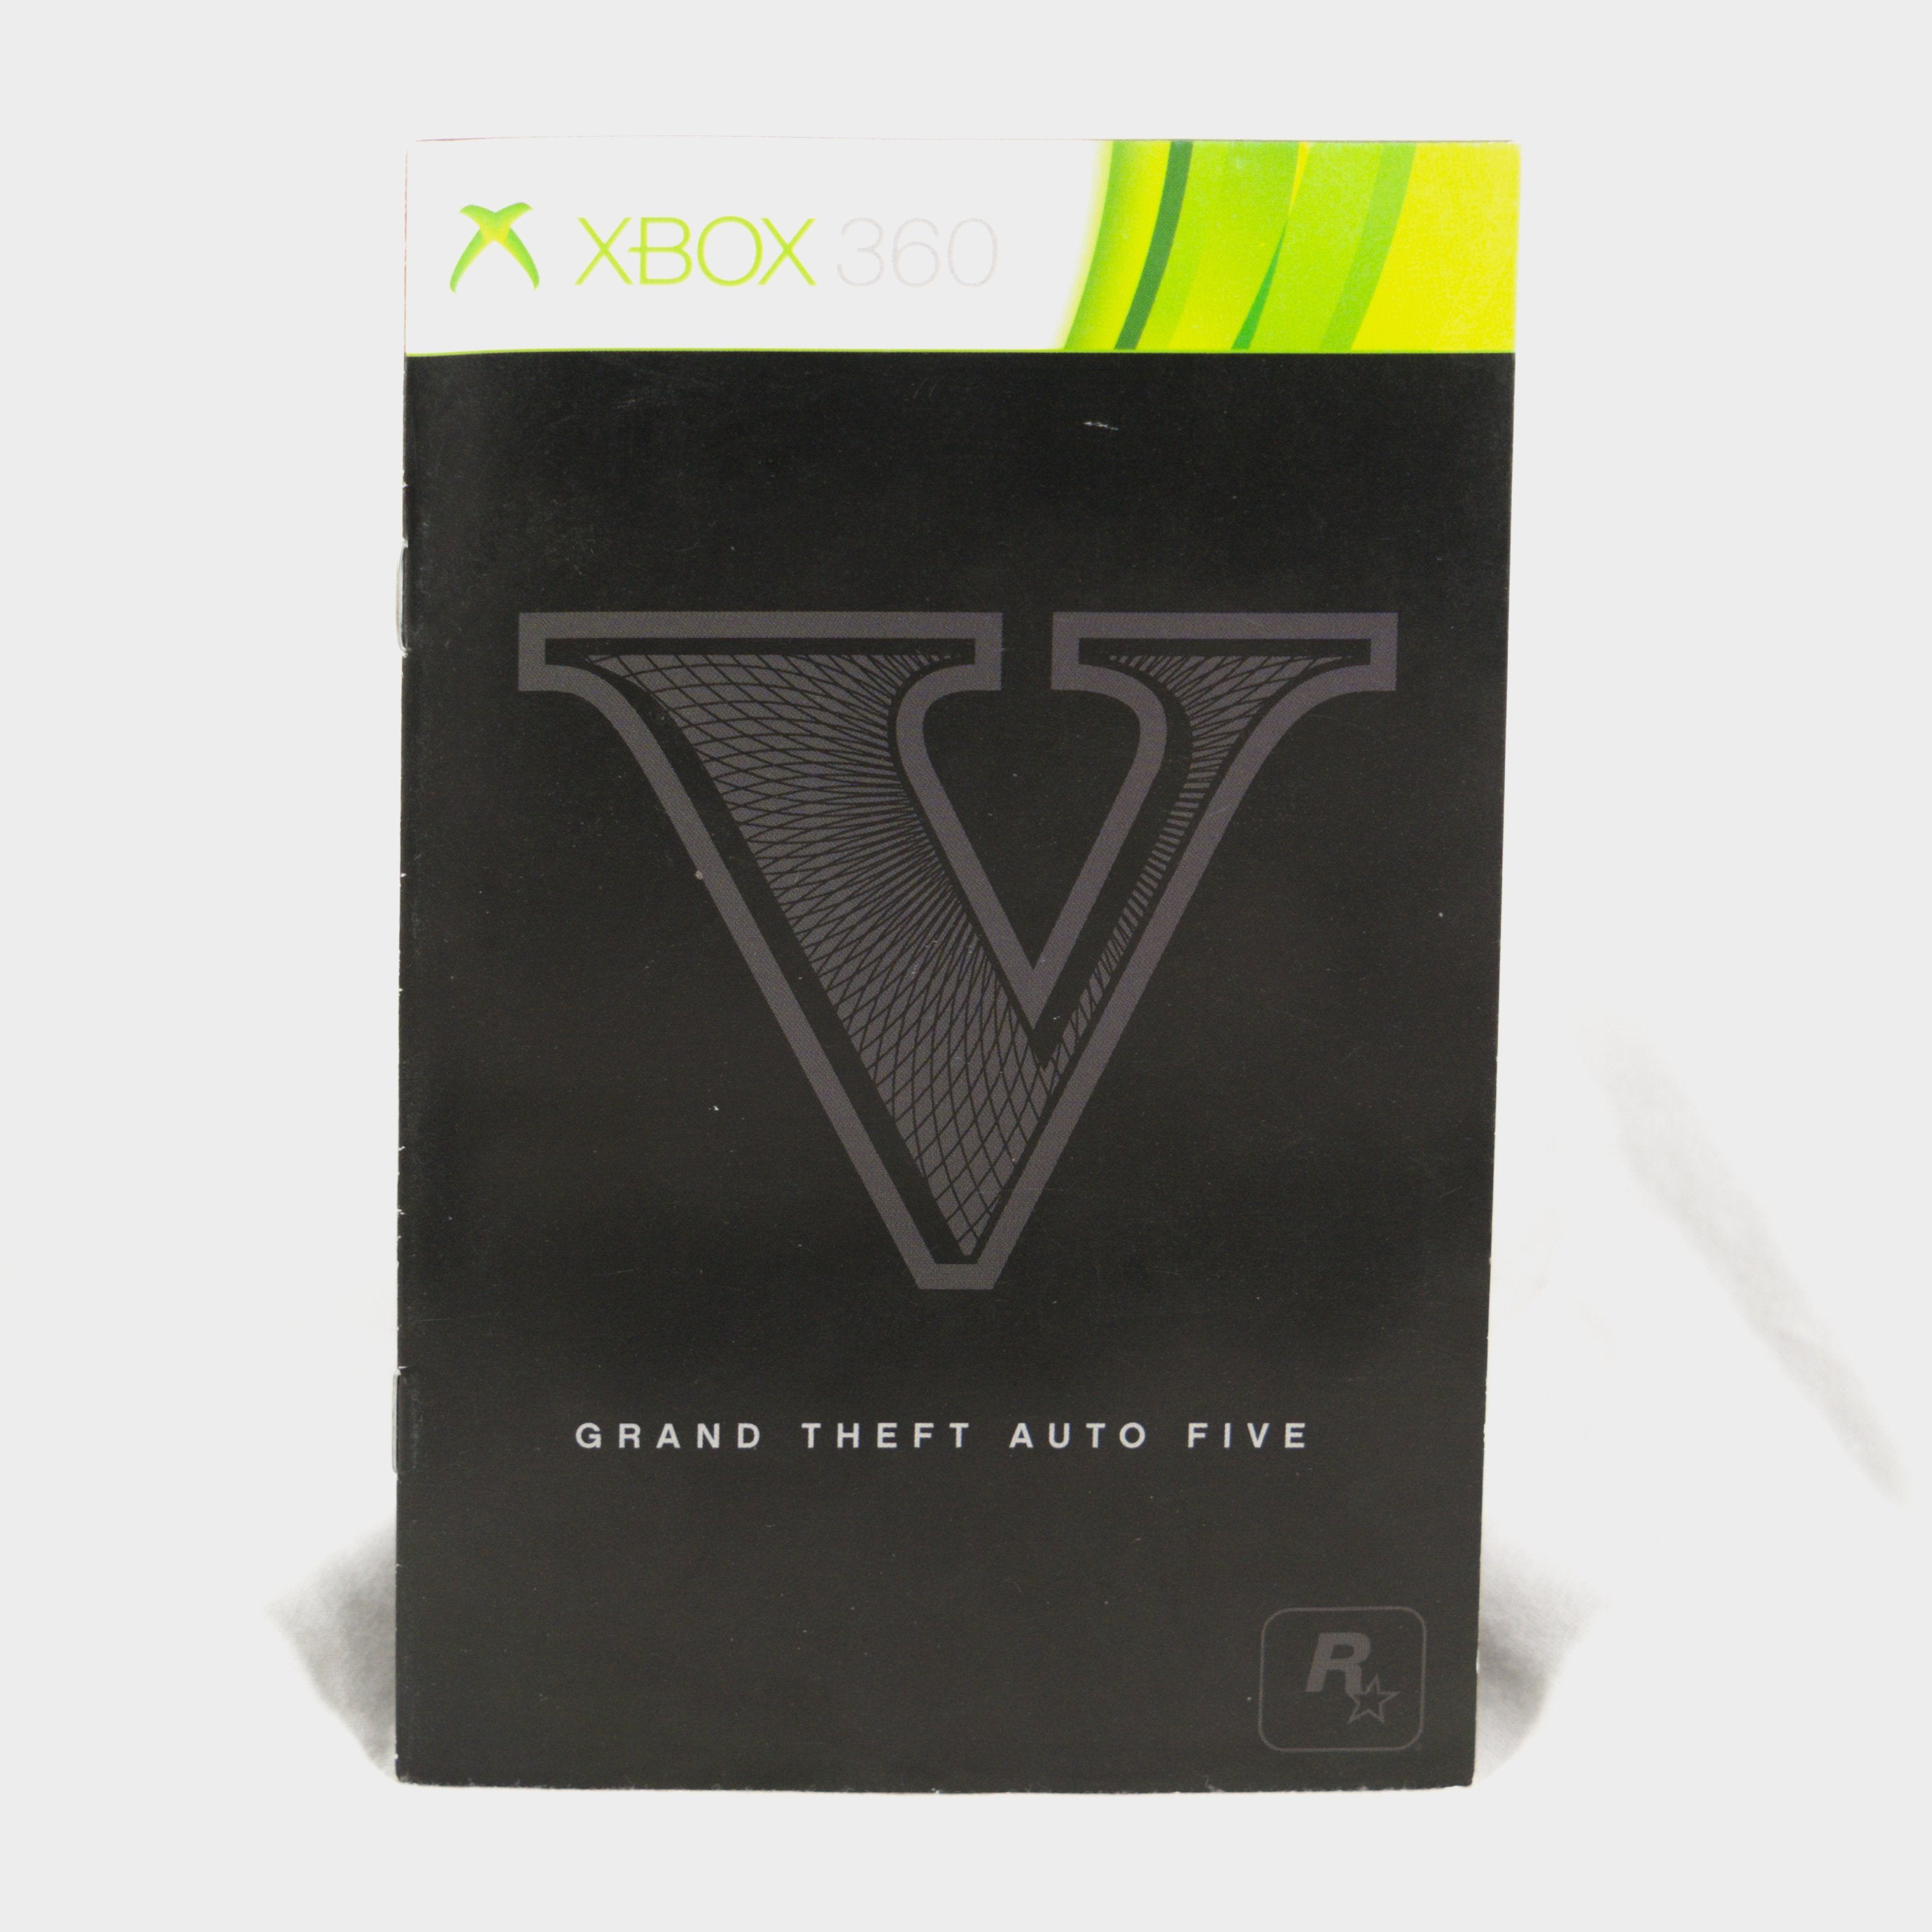 Details about Grand Theft Auto V Xbox 360 Manual on